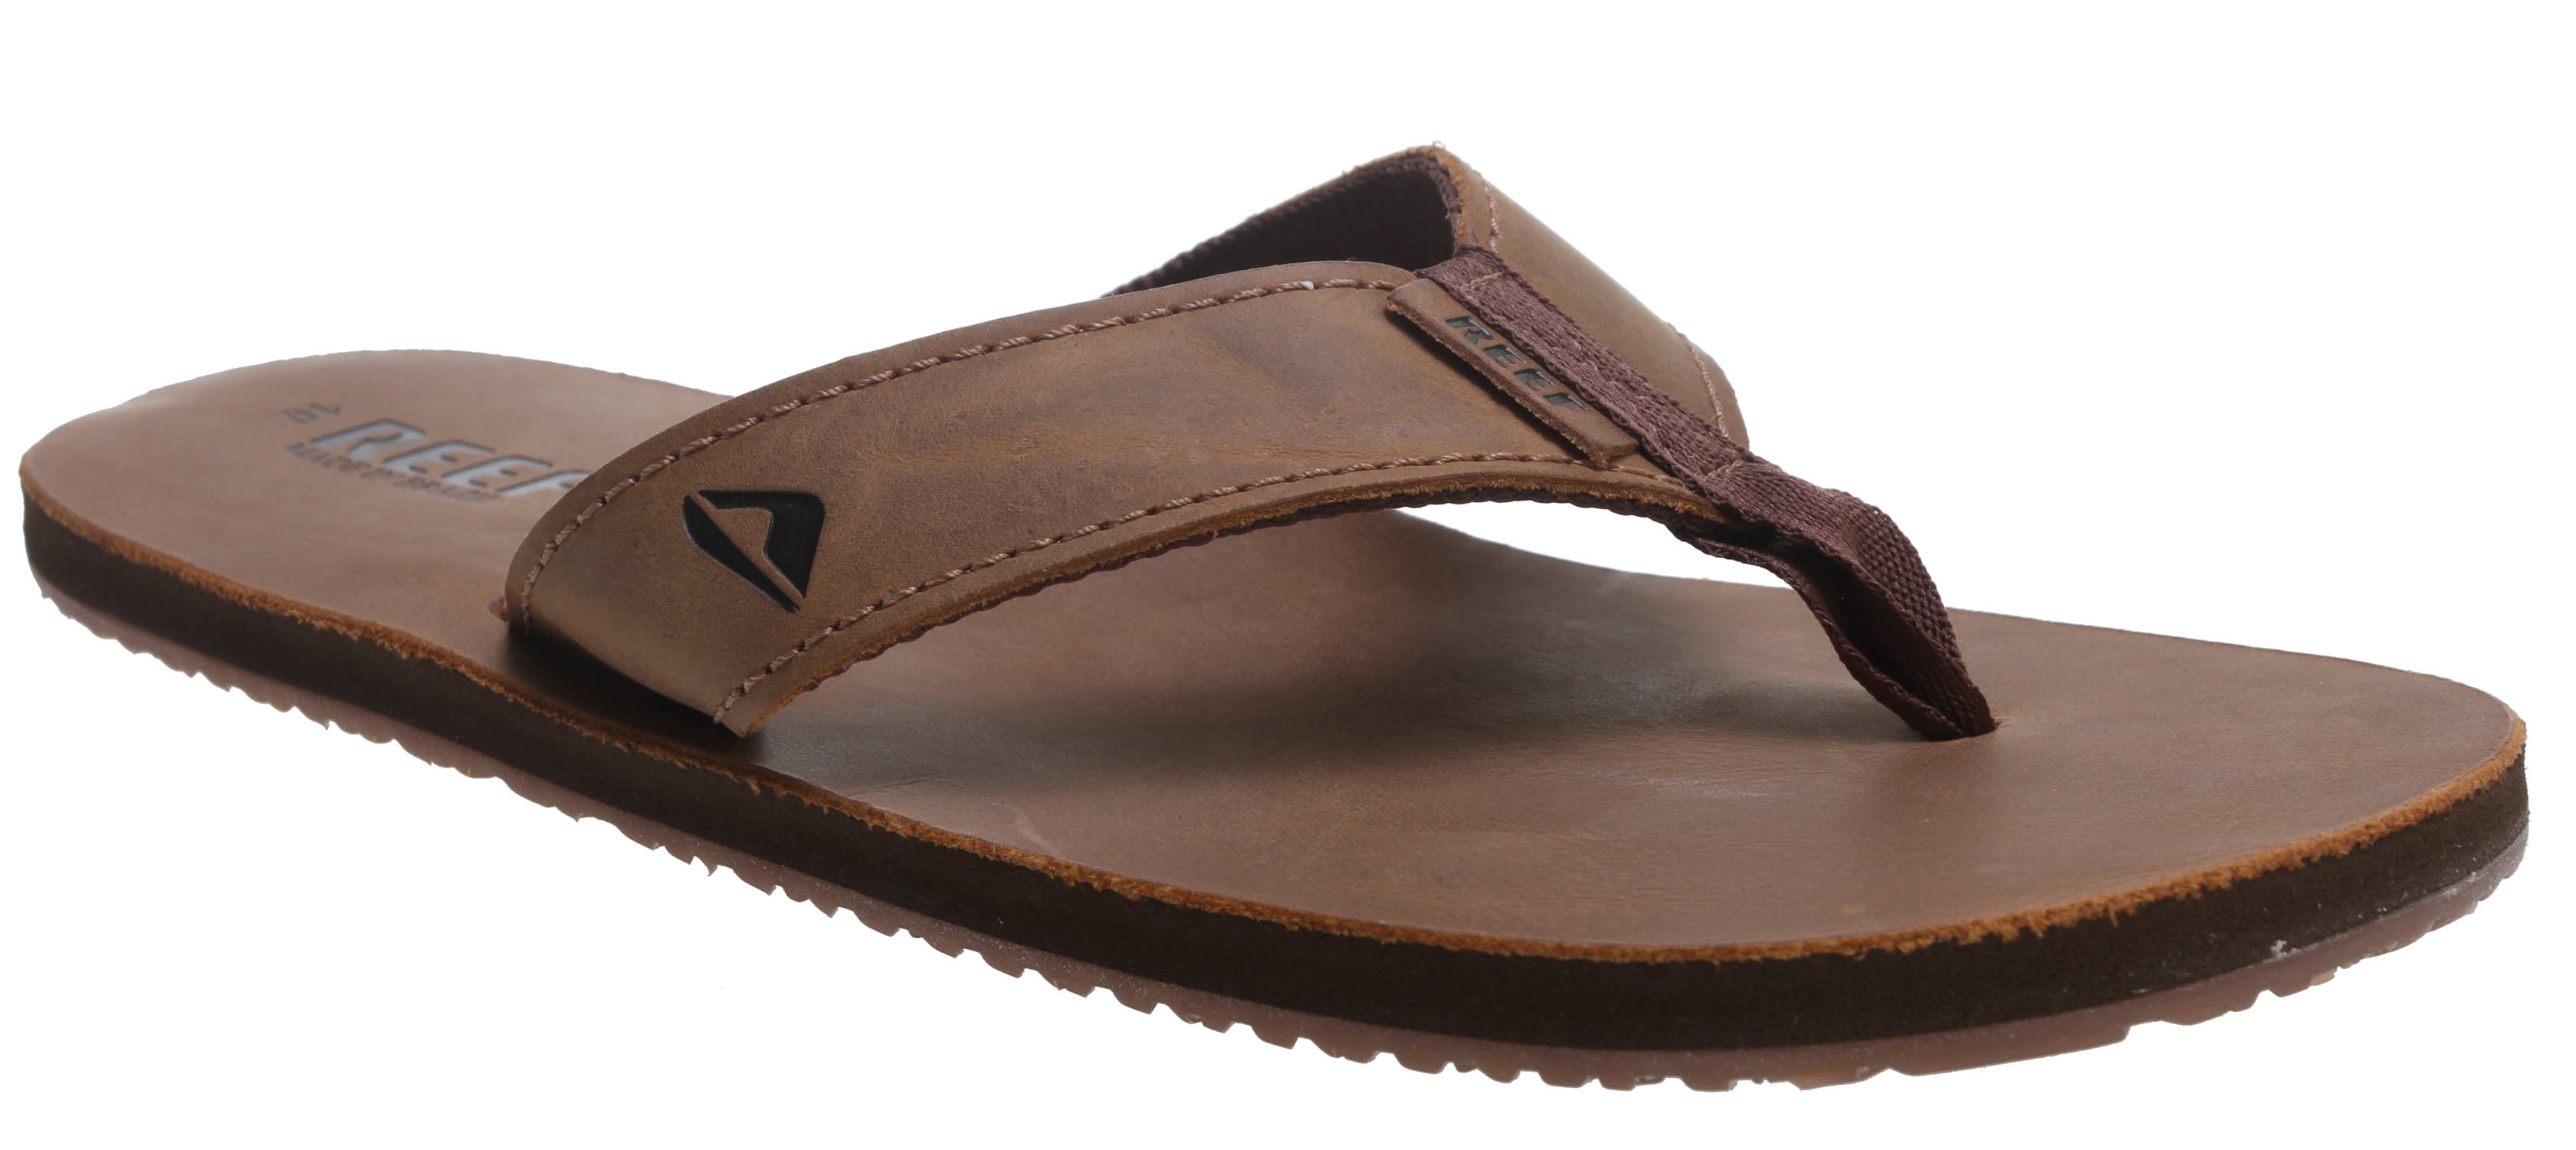 db1542ebc5cd Reef Leather Smoothy Sandals - thumbnail 2